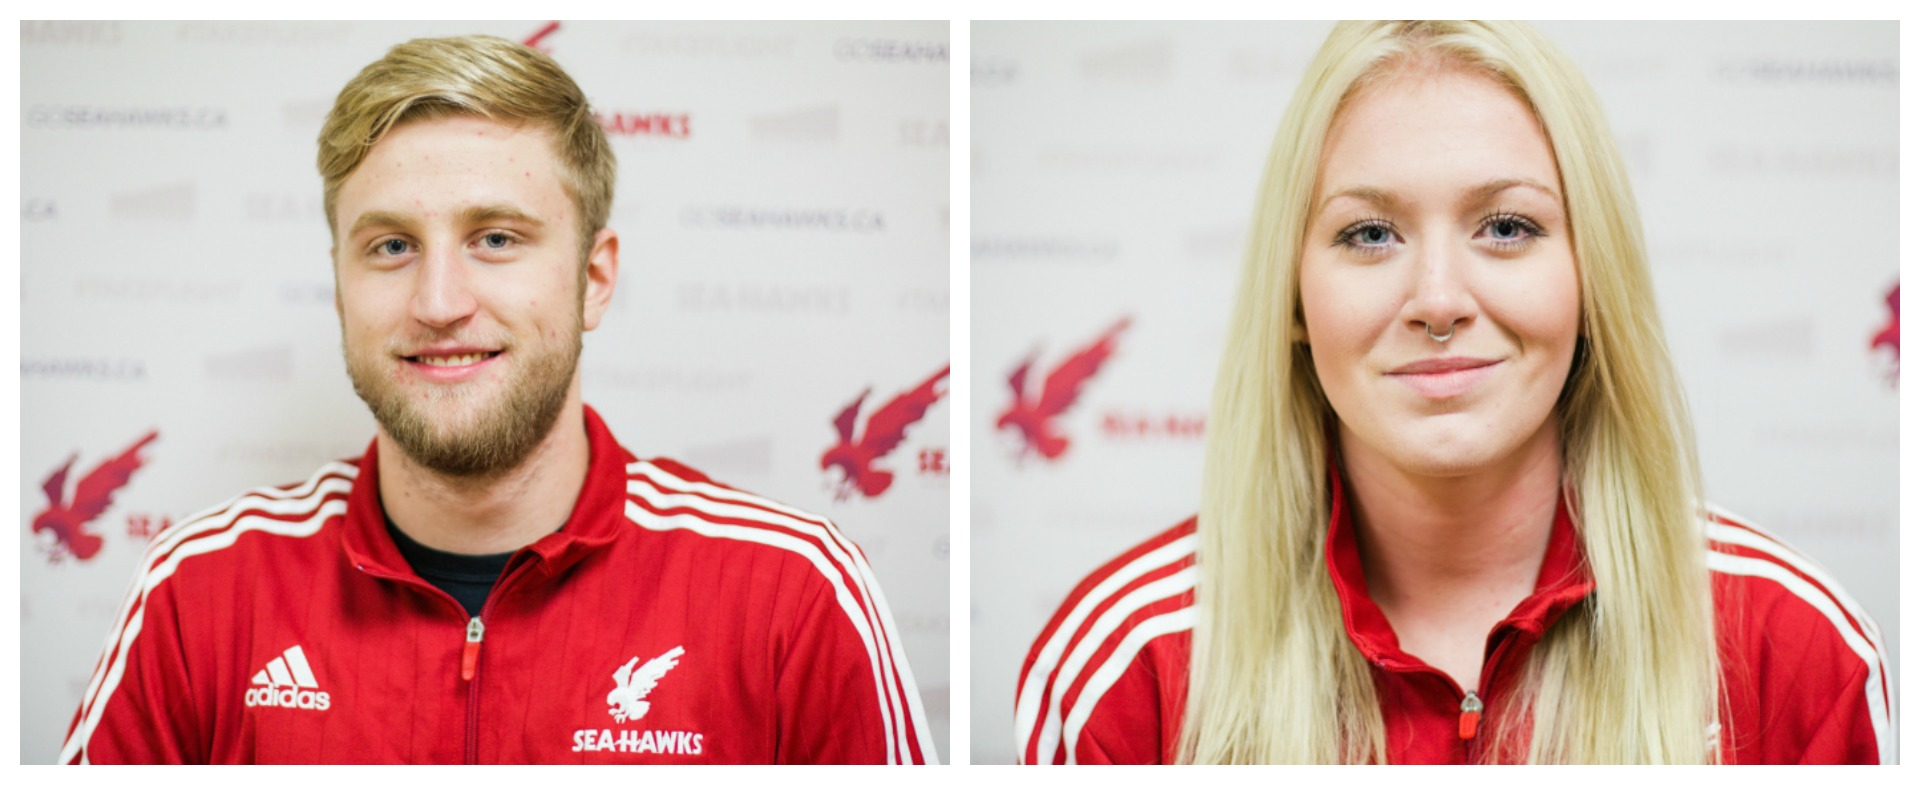 Leawood & LeBlanc to lead Sea-Hawks into Kemp Fry